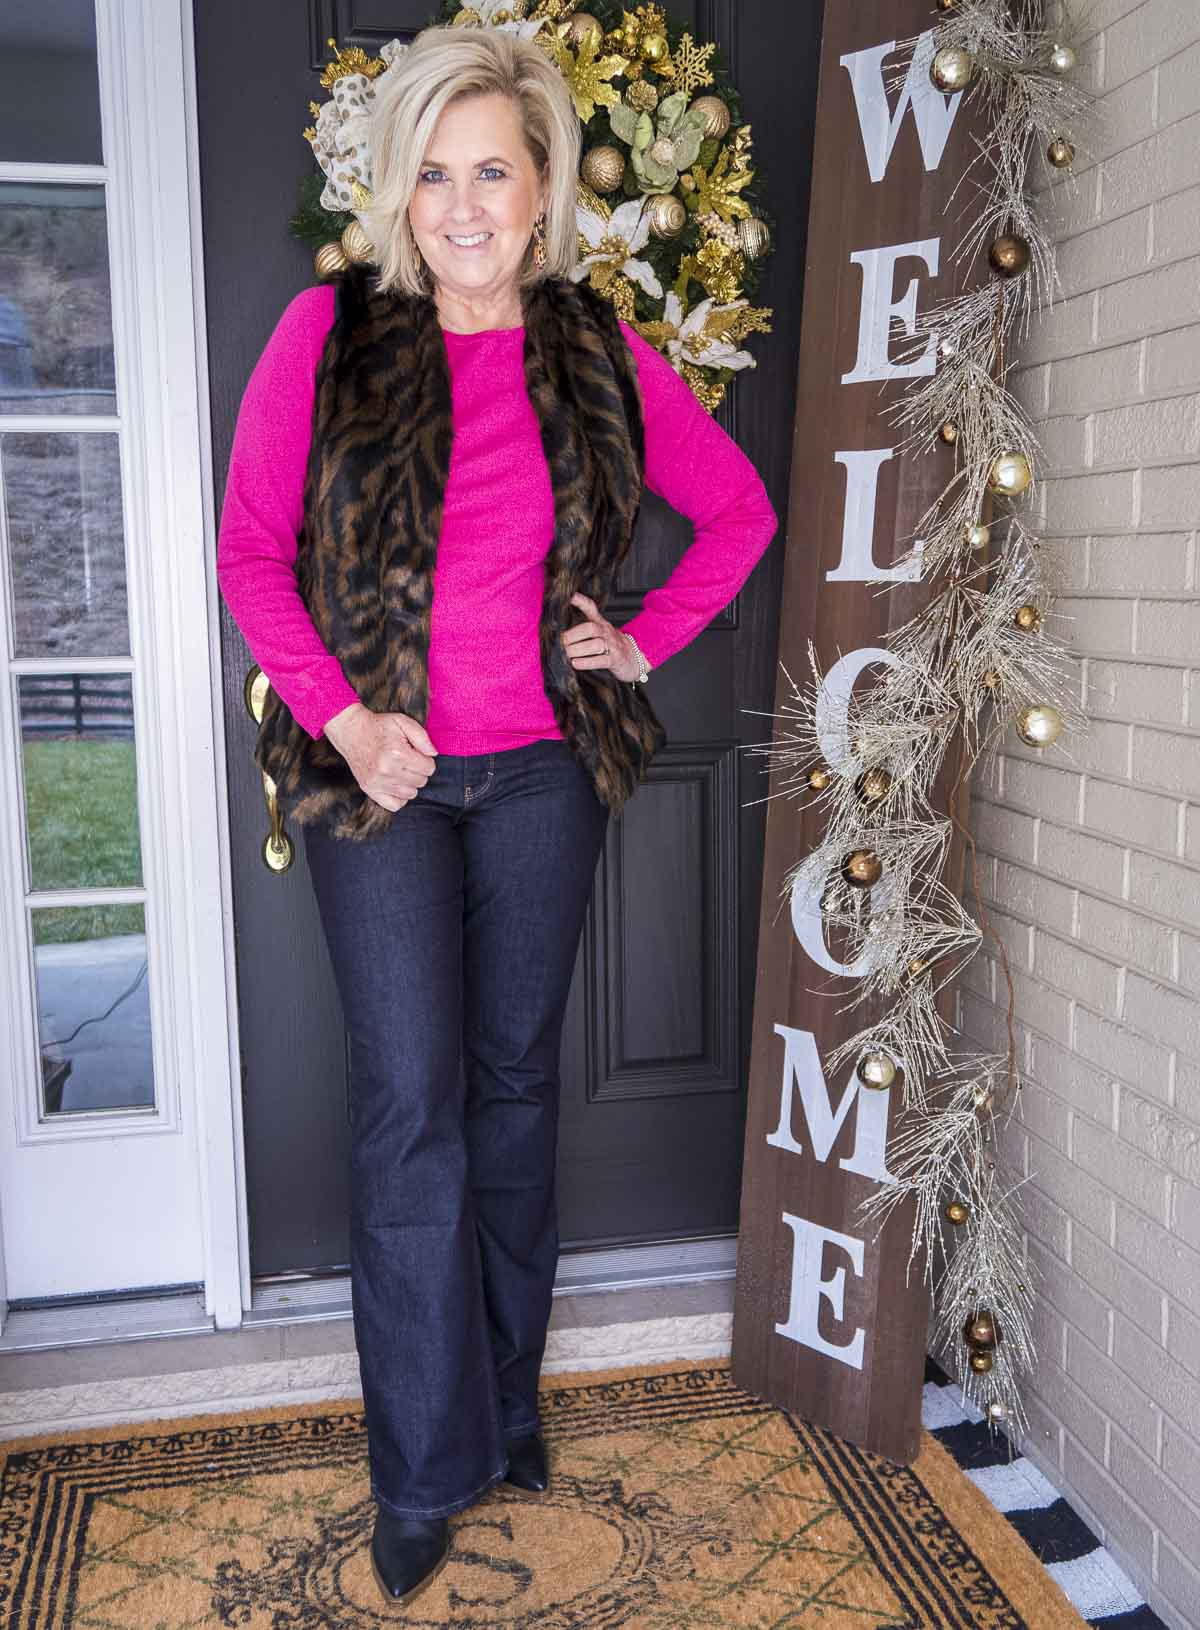 Over 40 Fashion Blogger 50 Is Not Old is wearing a pink sweater with a tiger print faux fur vest, flare jeans, and black ankle boots